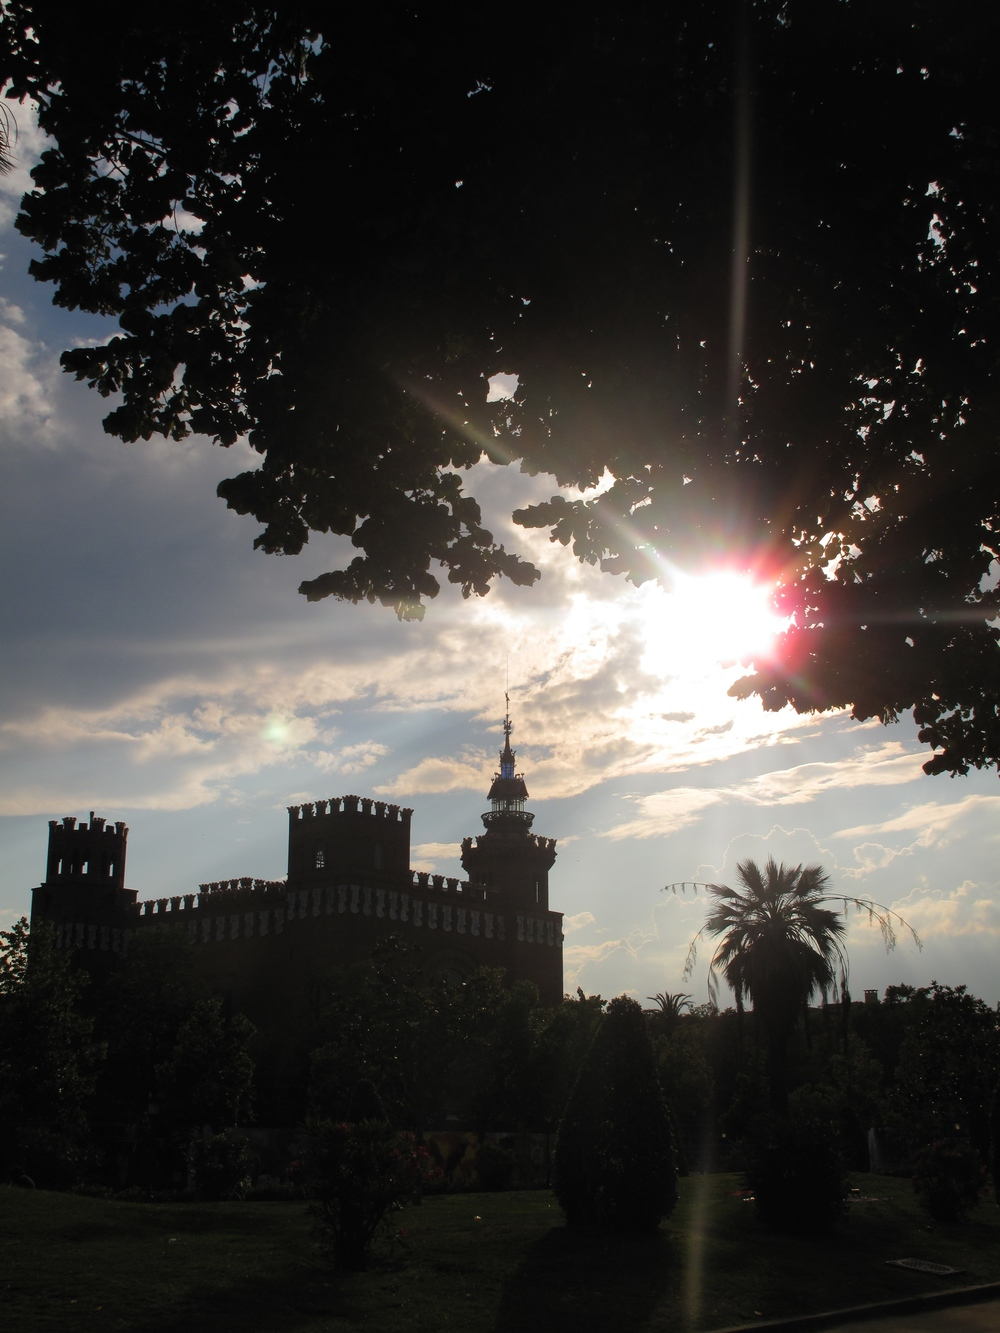 Sunset rays over old buildings and palm trees in Barcelona